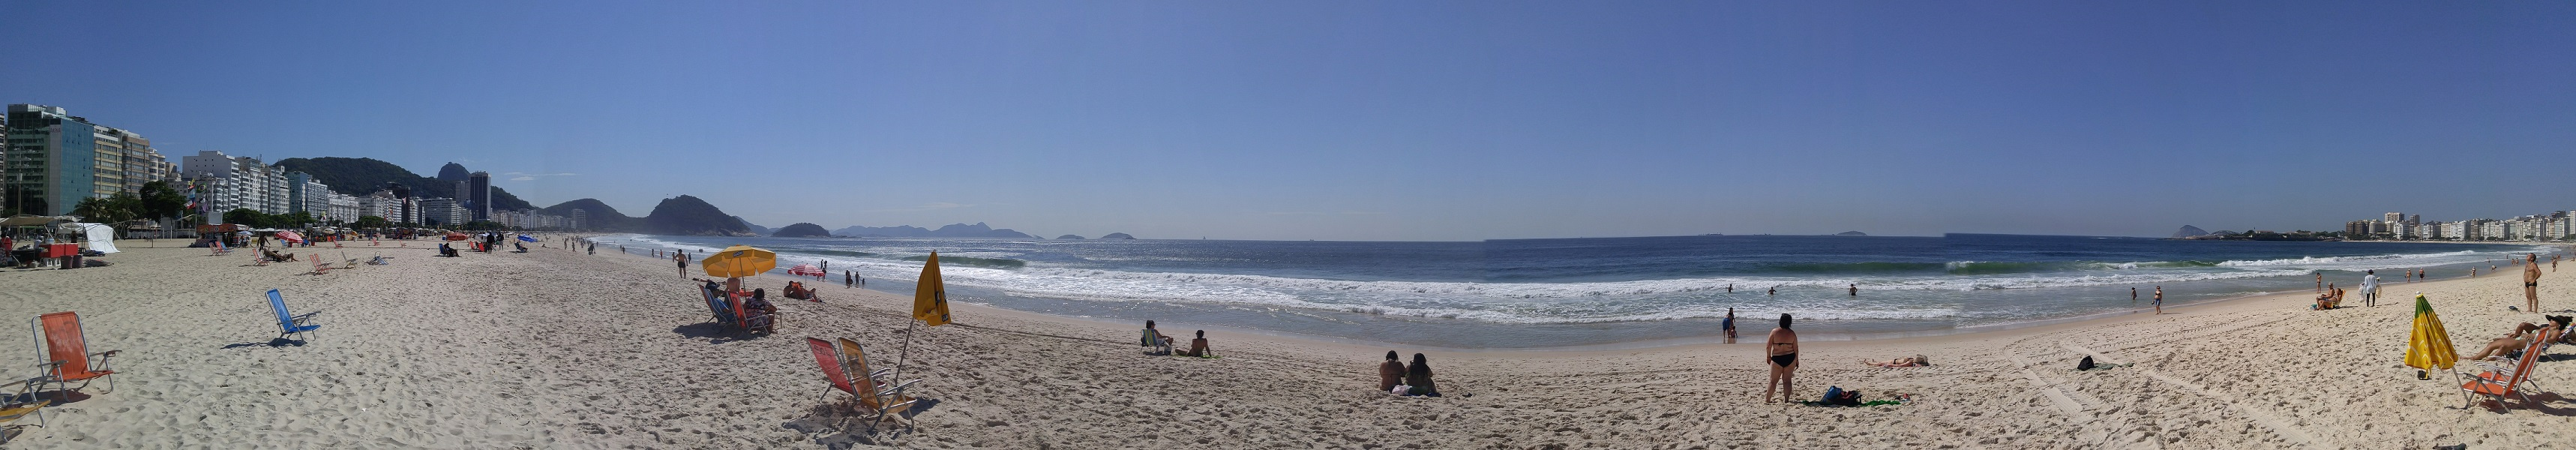 Copacabana Panorama.